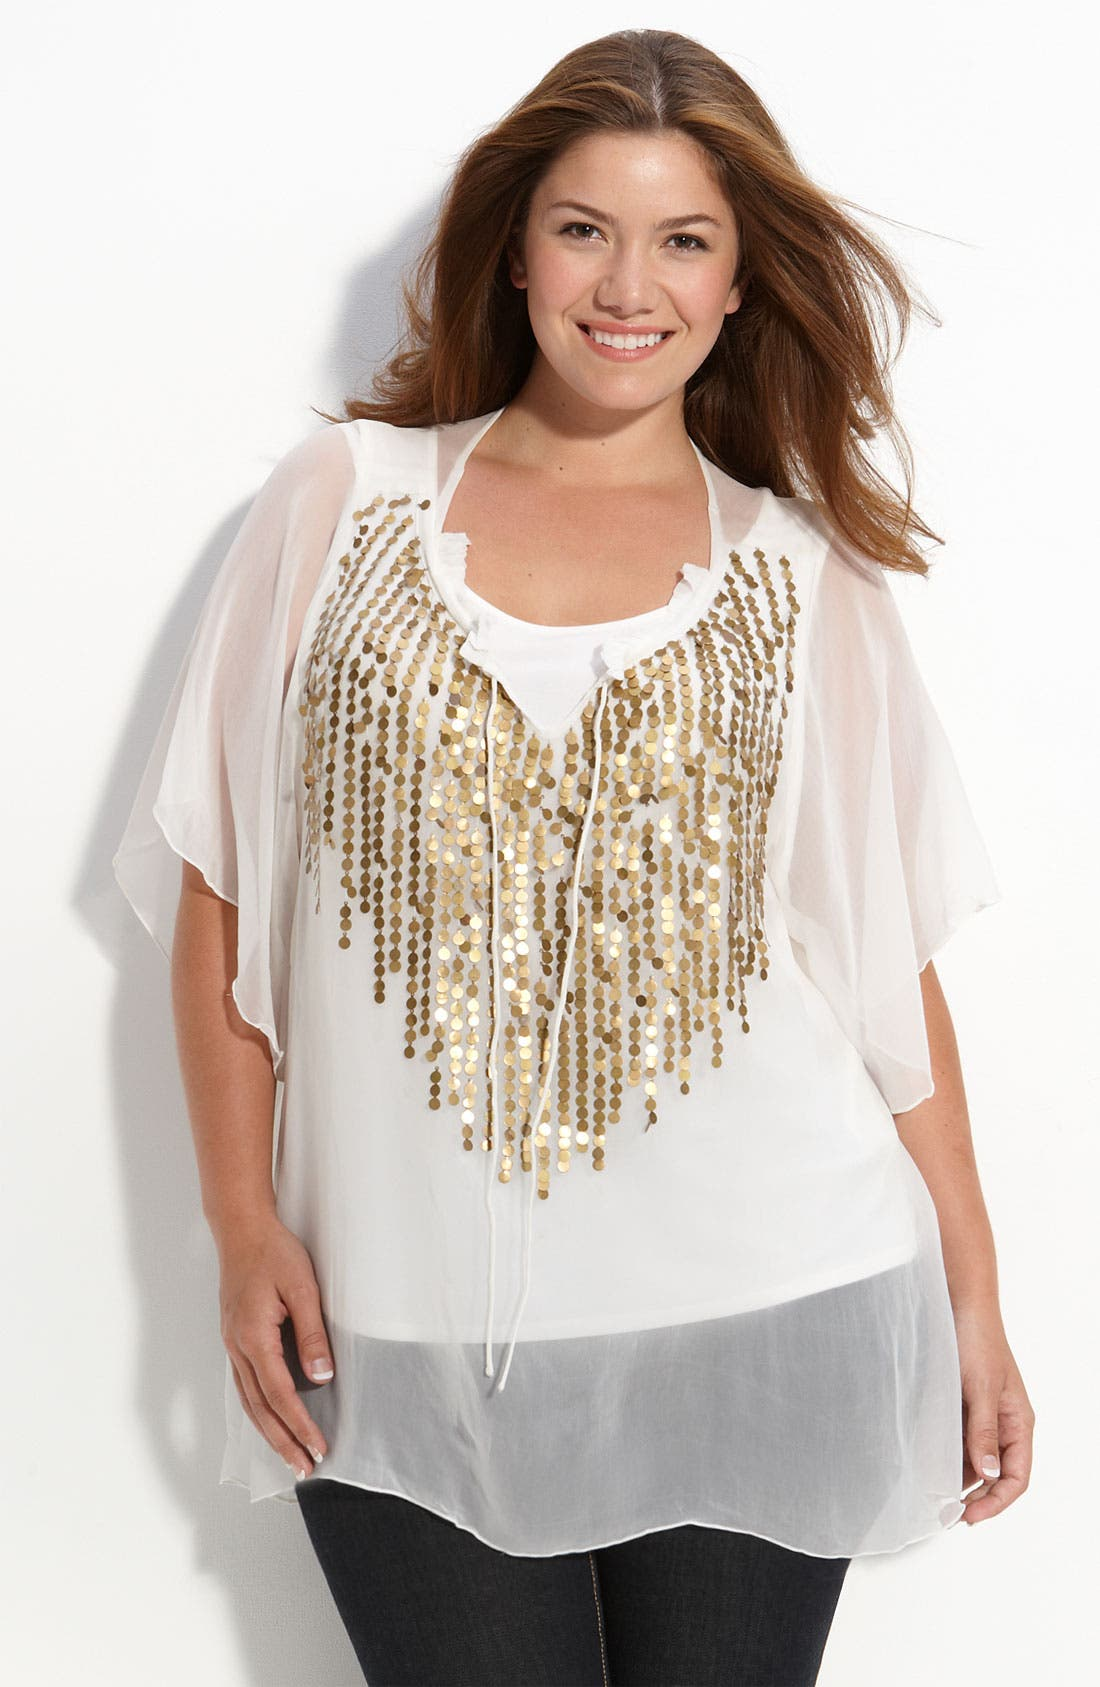 Alternate Image 1 Selected - Tbags Embellished Sheer Top (Plus)